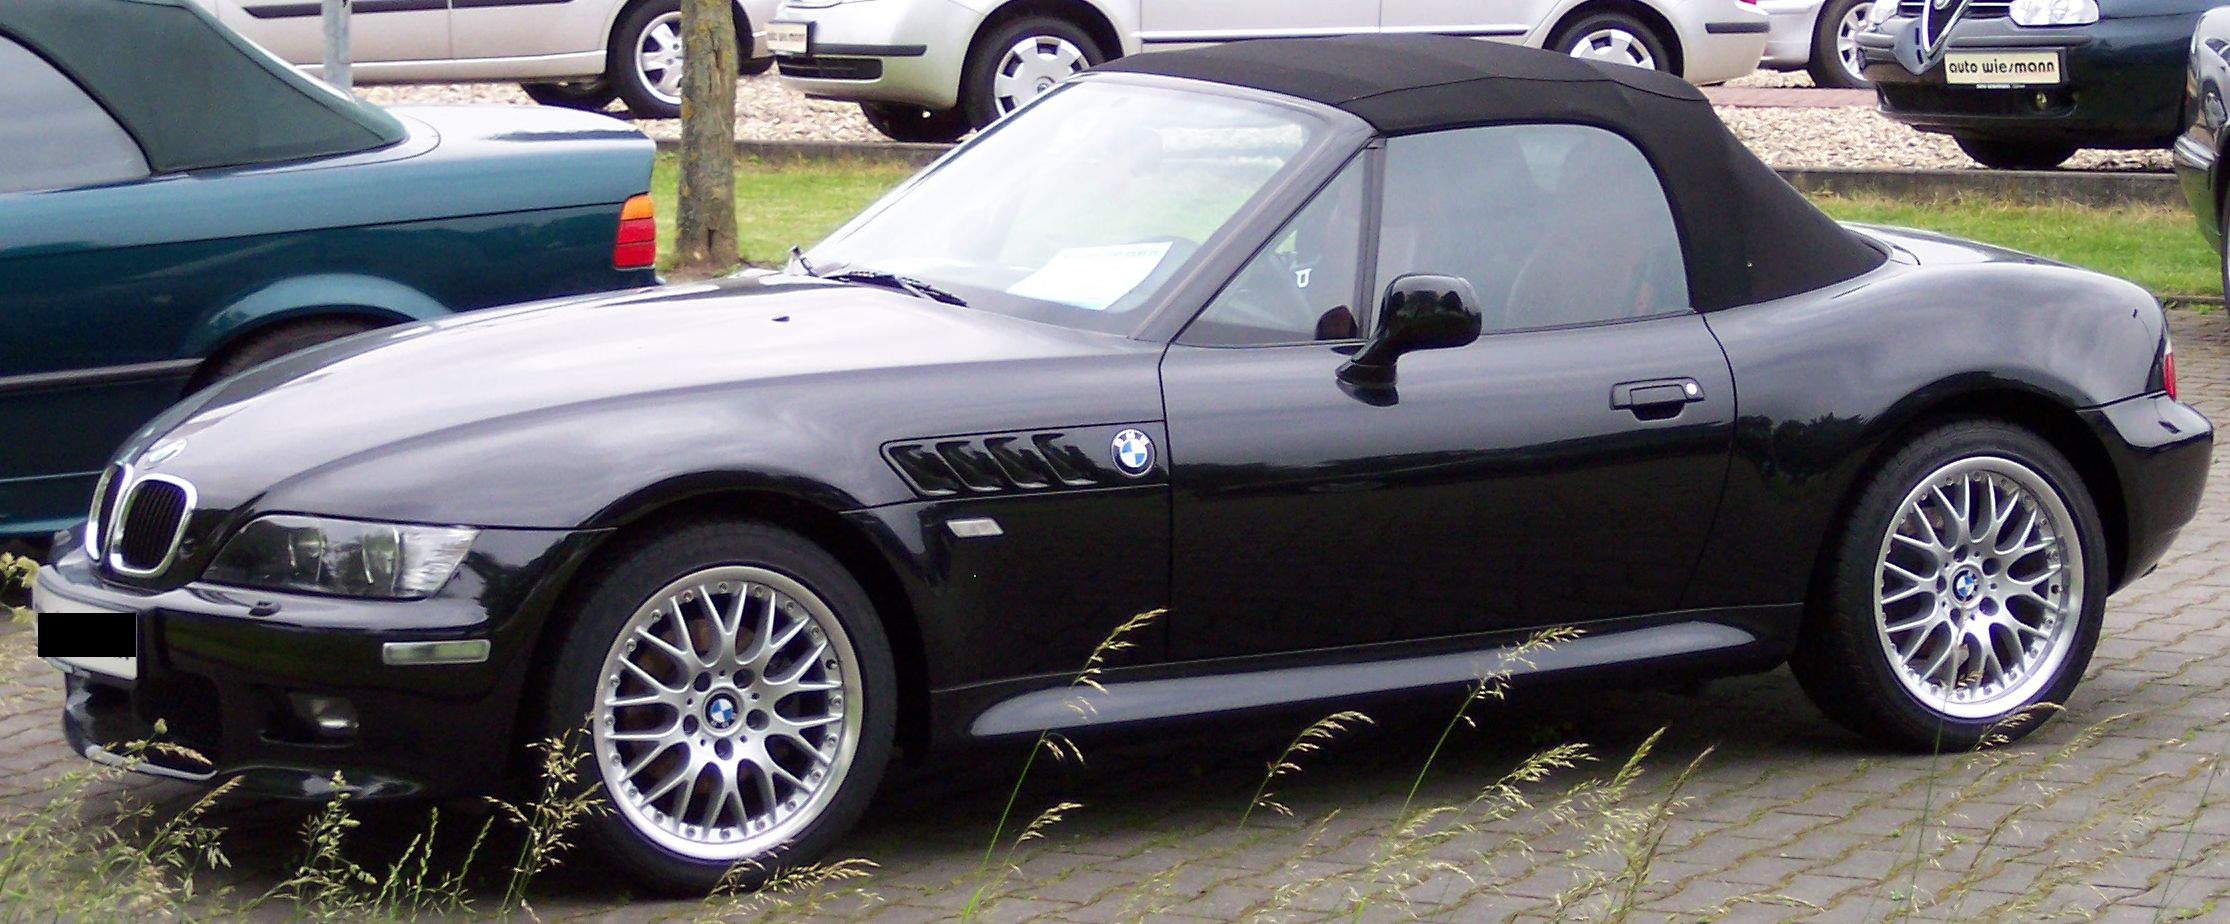 File Bmw Z3 Black Vl Jpg Wikipedia